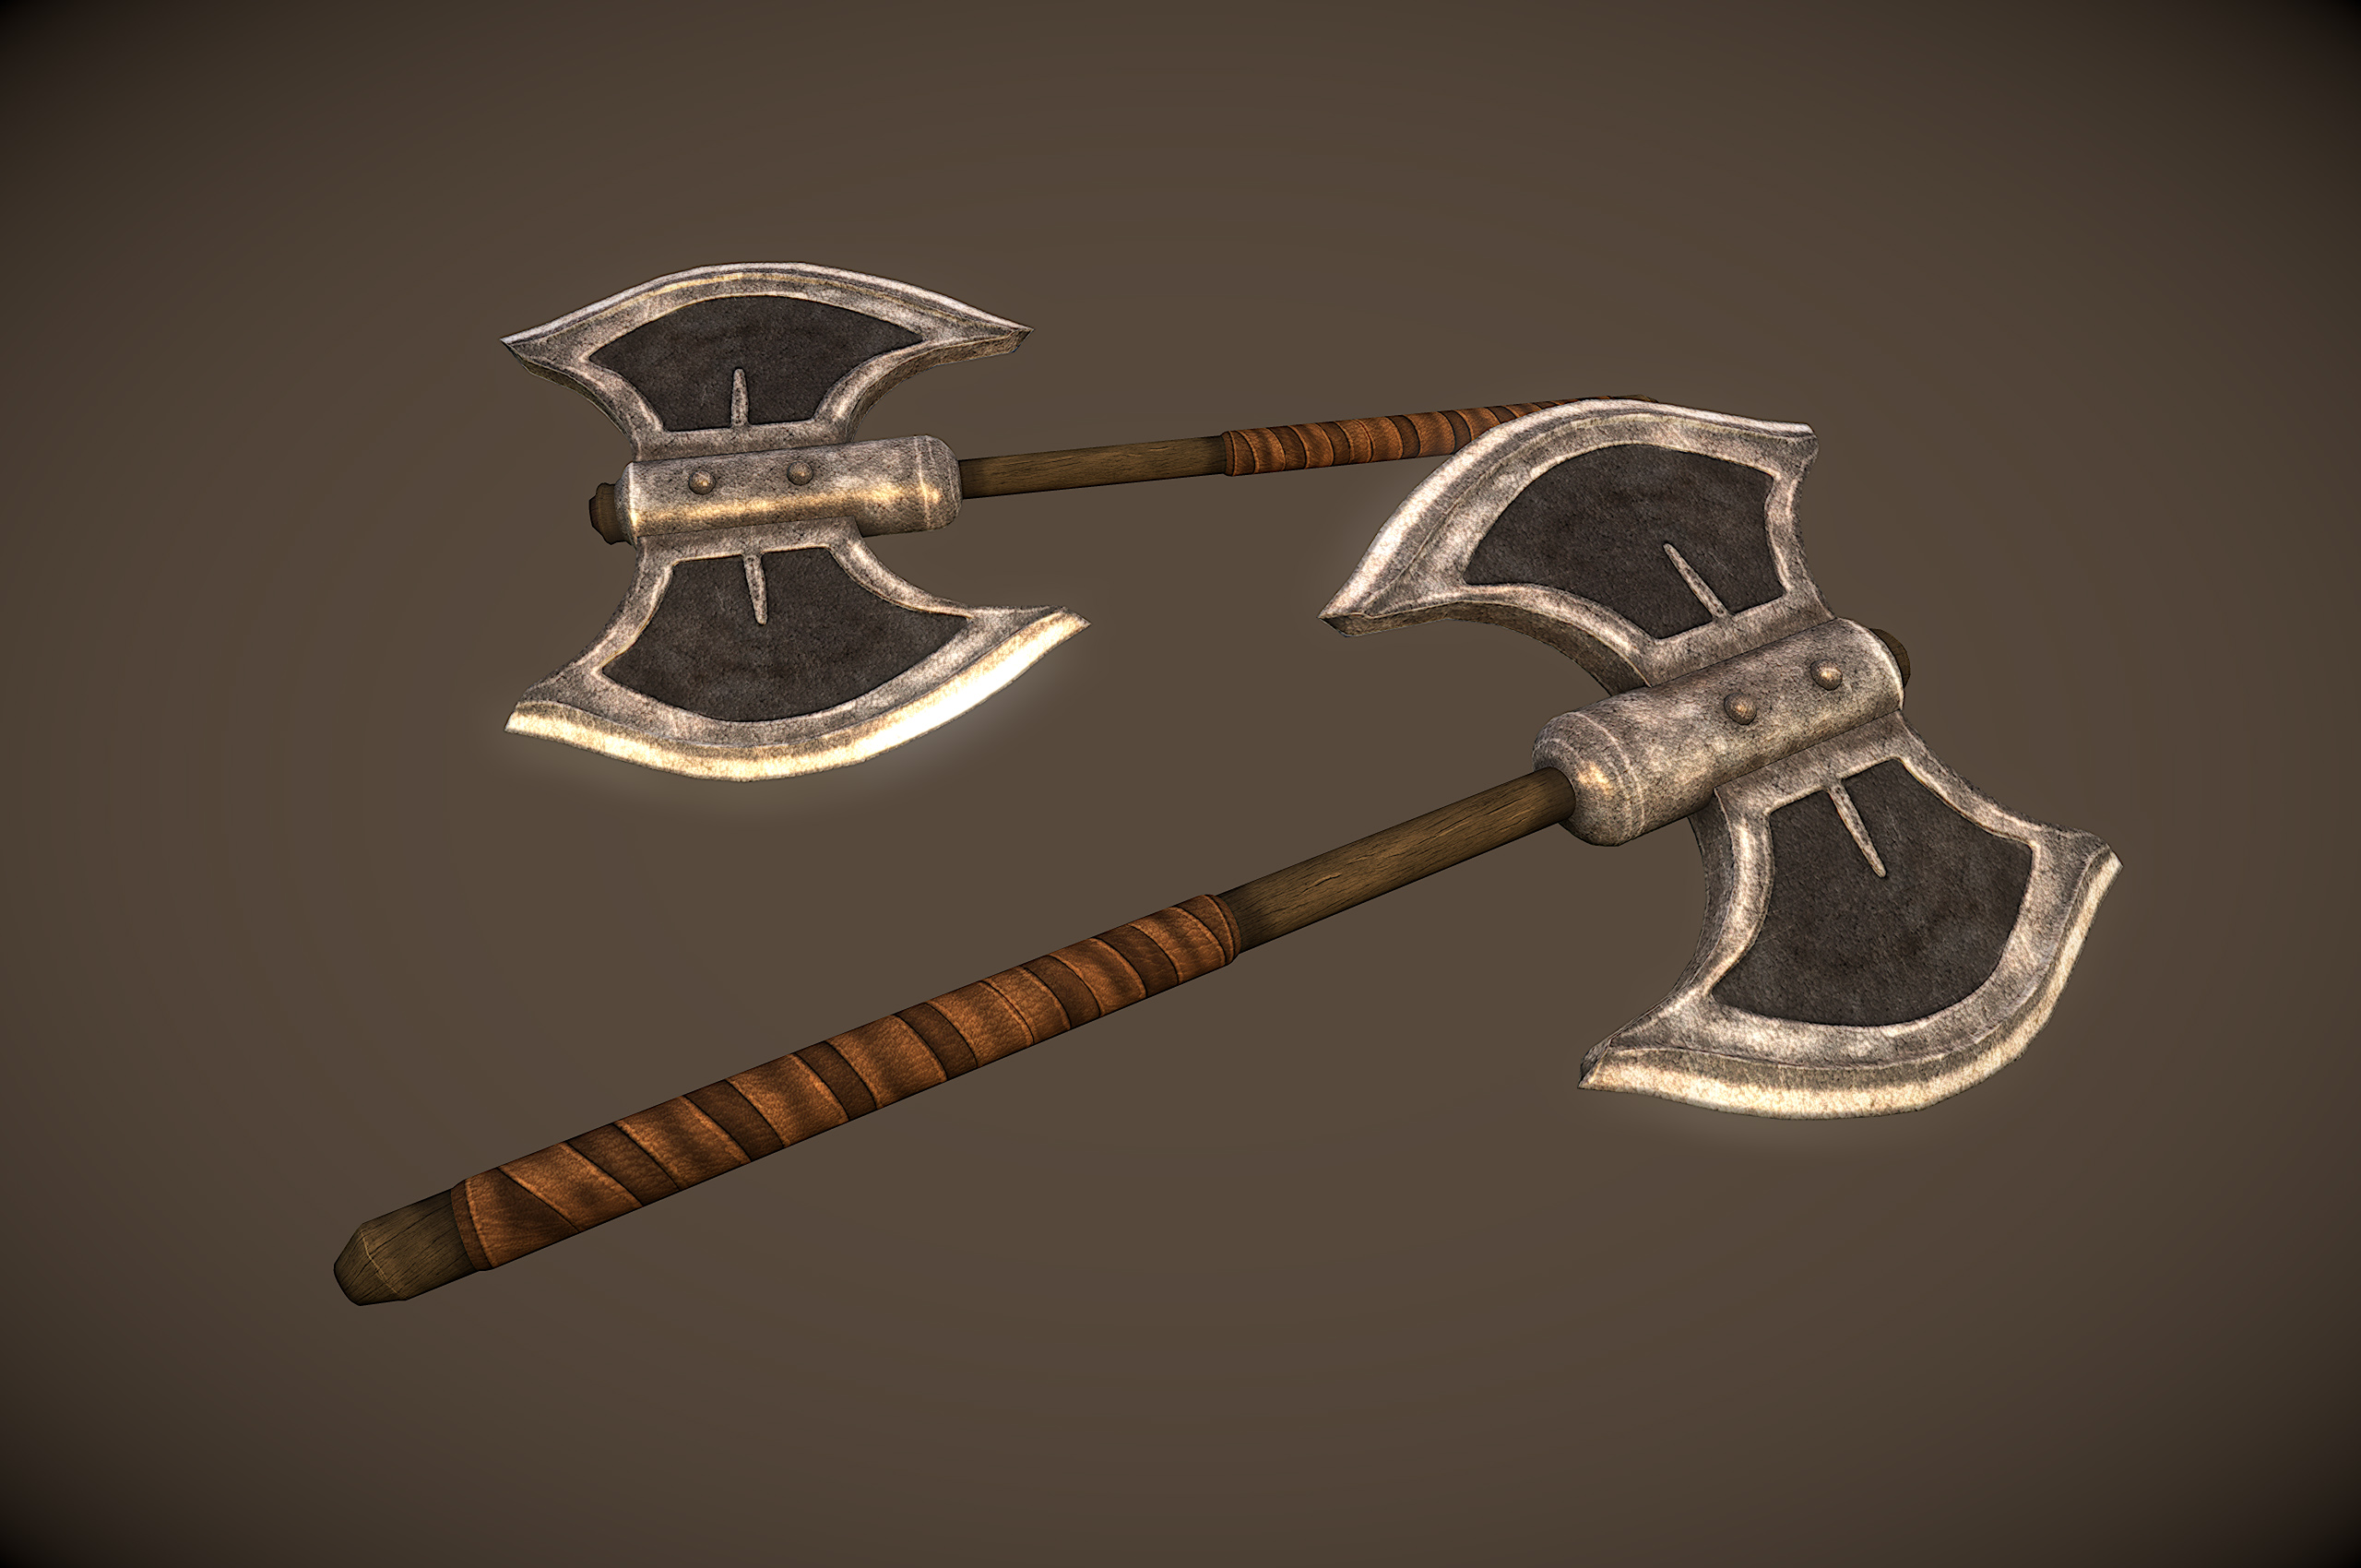 Iron BattleAxe